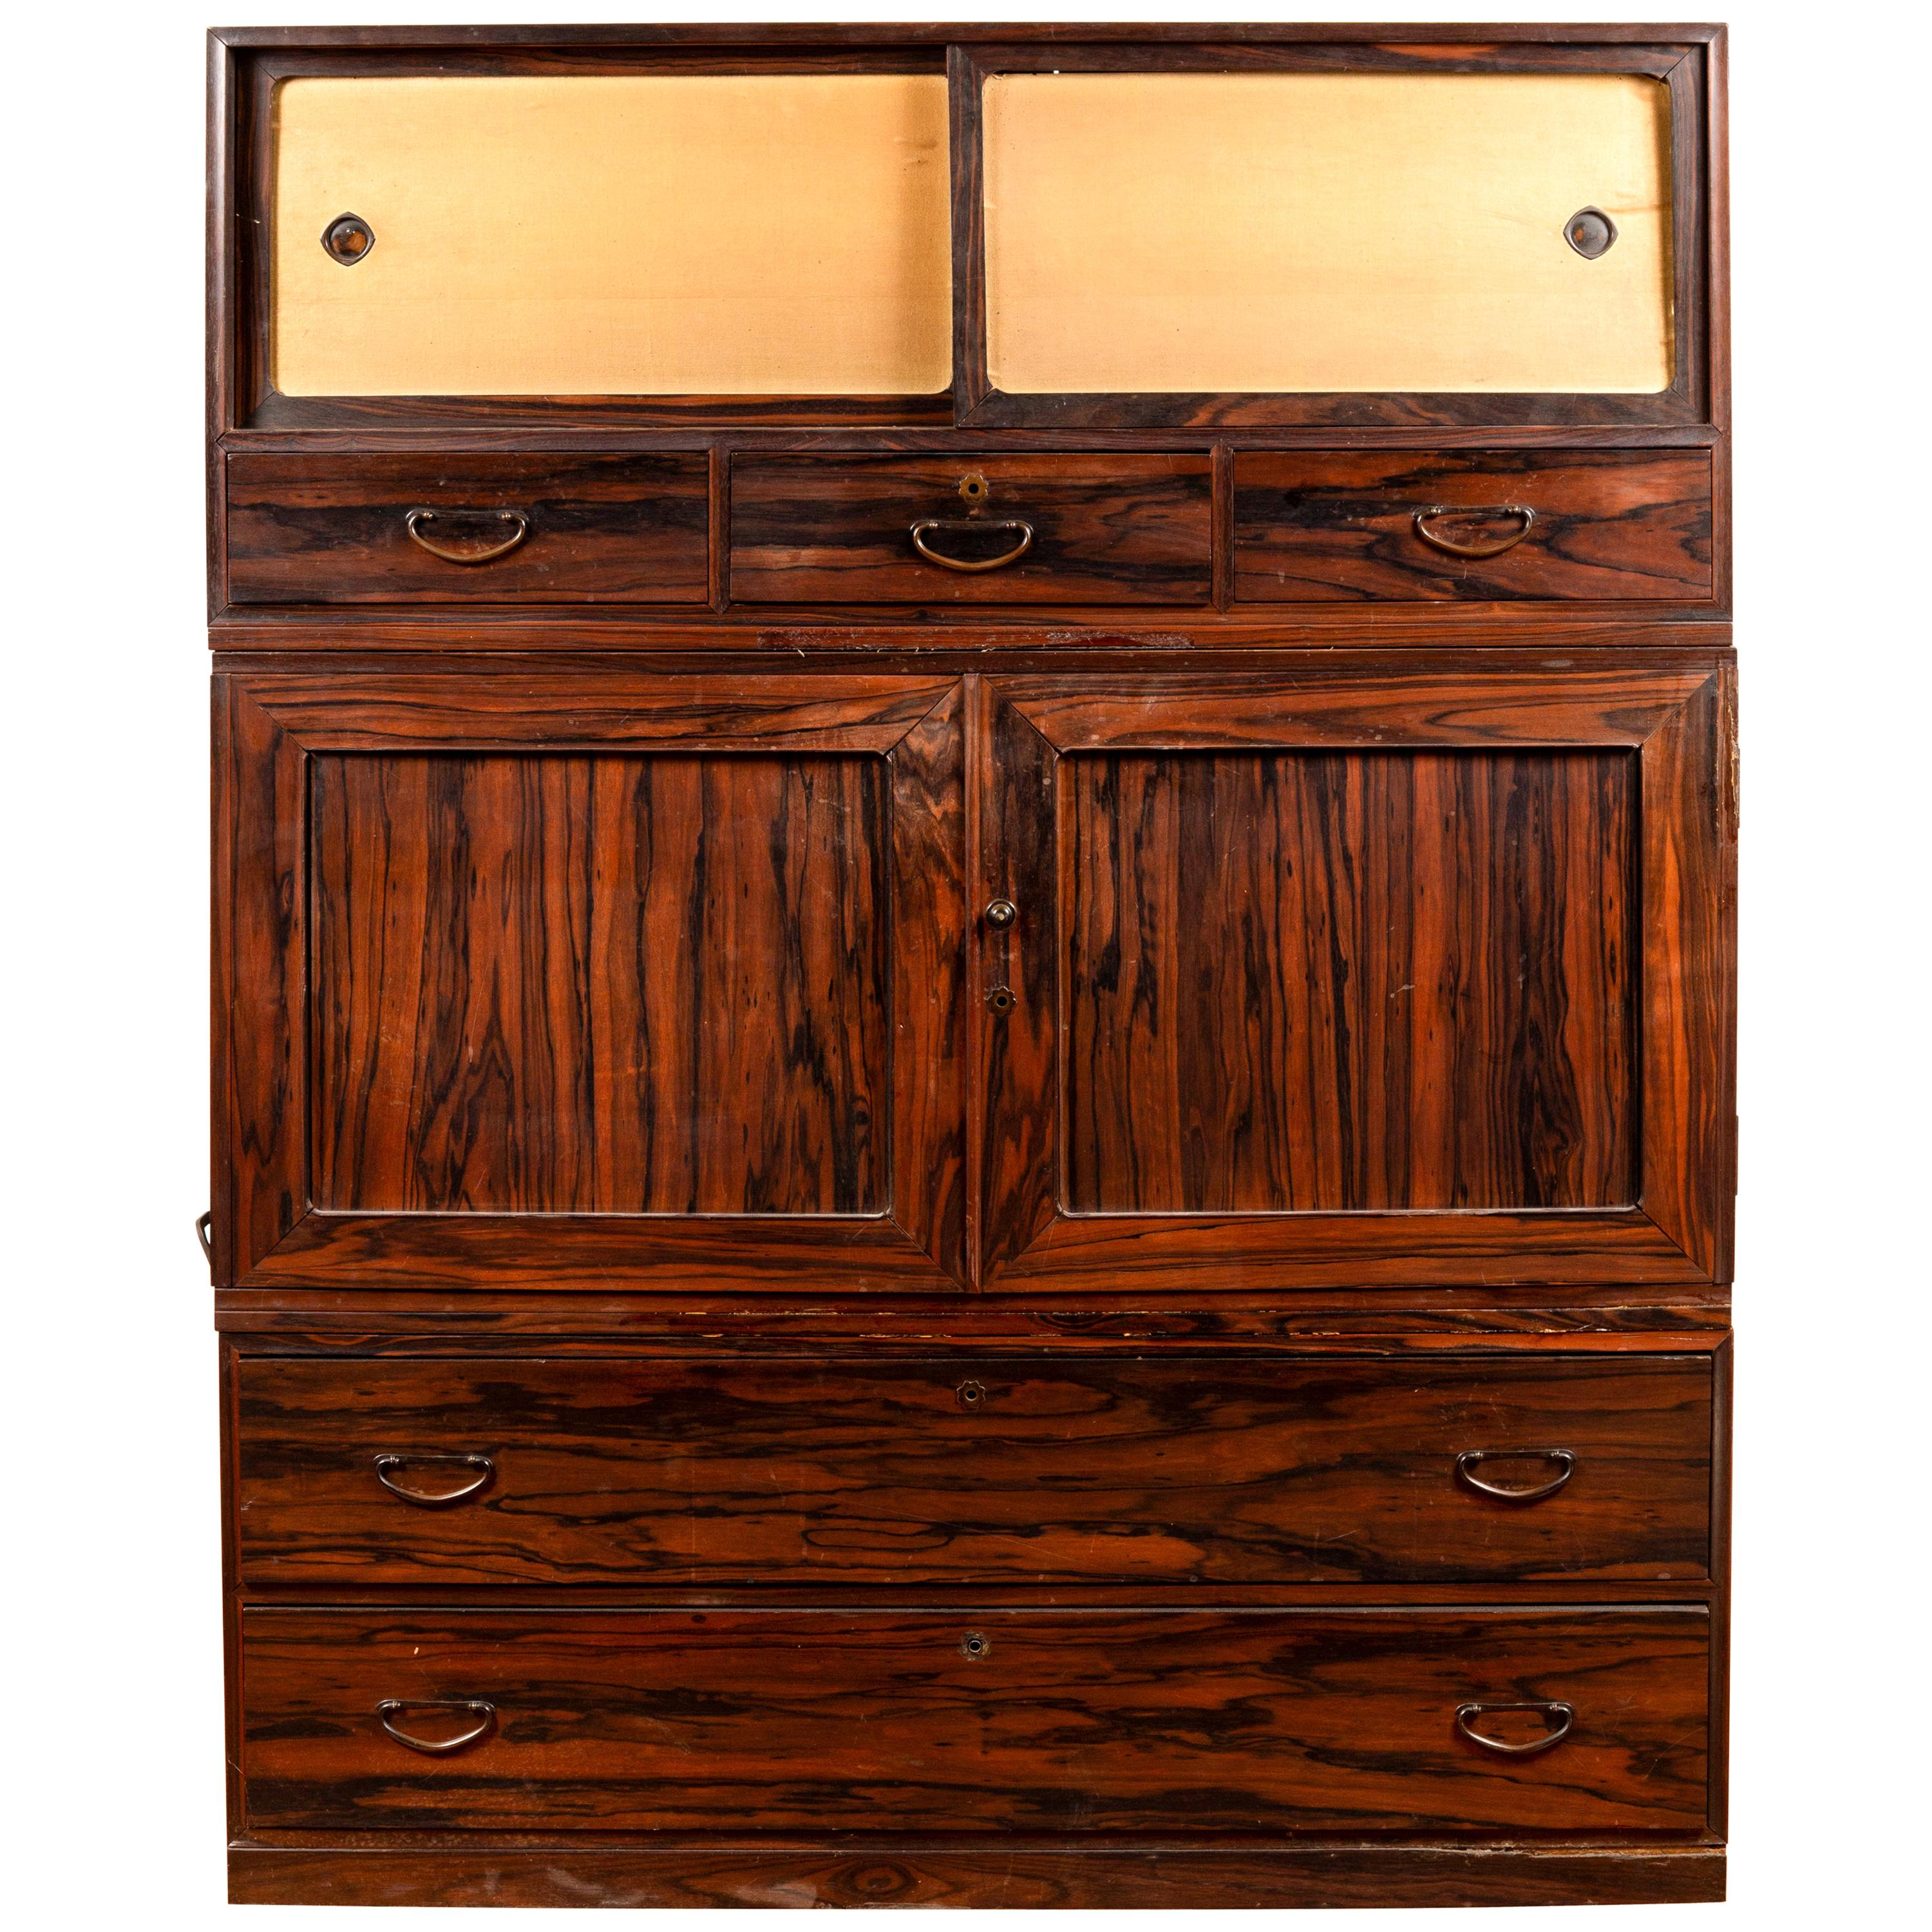 Japanese 20th Century Mulberry Wood Kimono Cabinet with Doors and Drawers